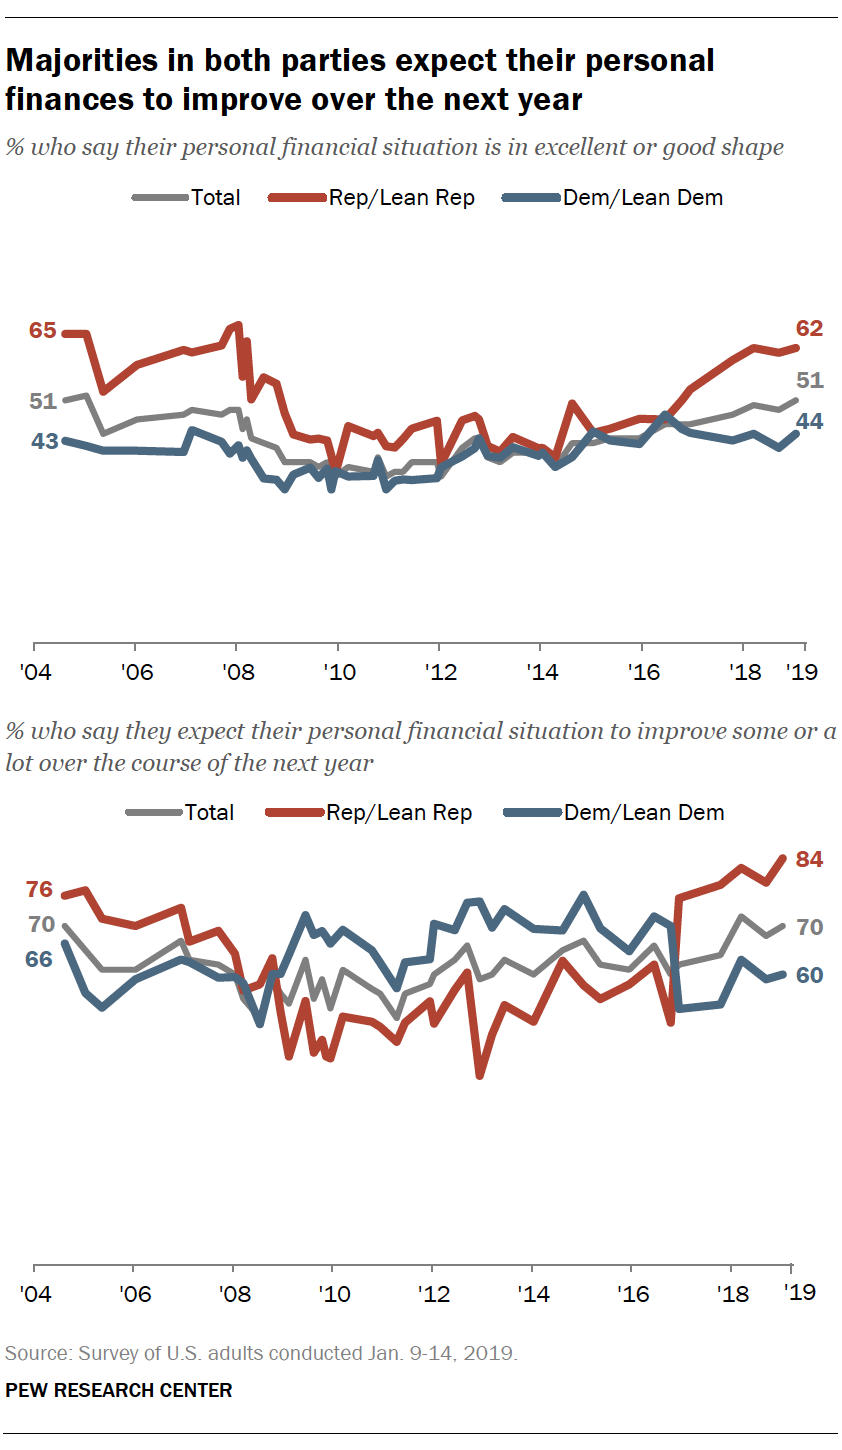 Majorities in both parties expect their personal finances to improve over the next year